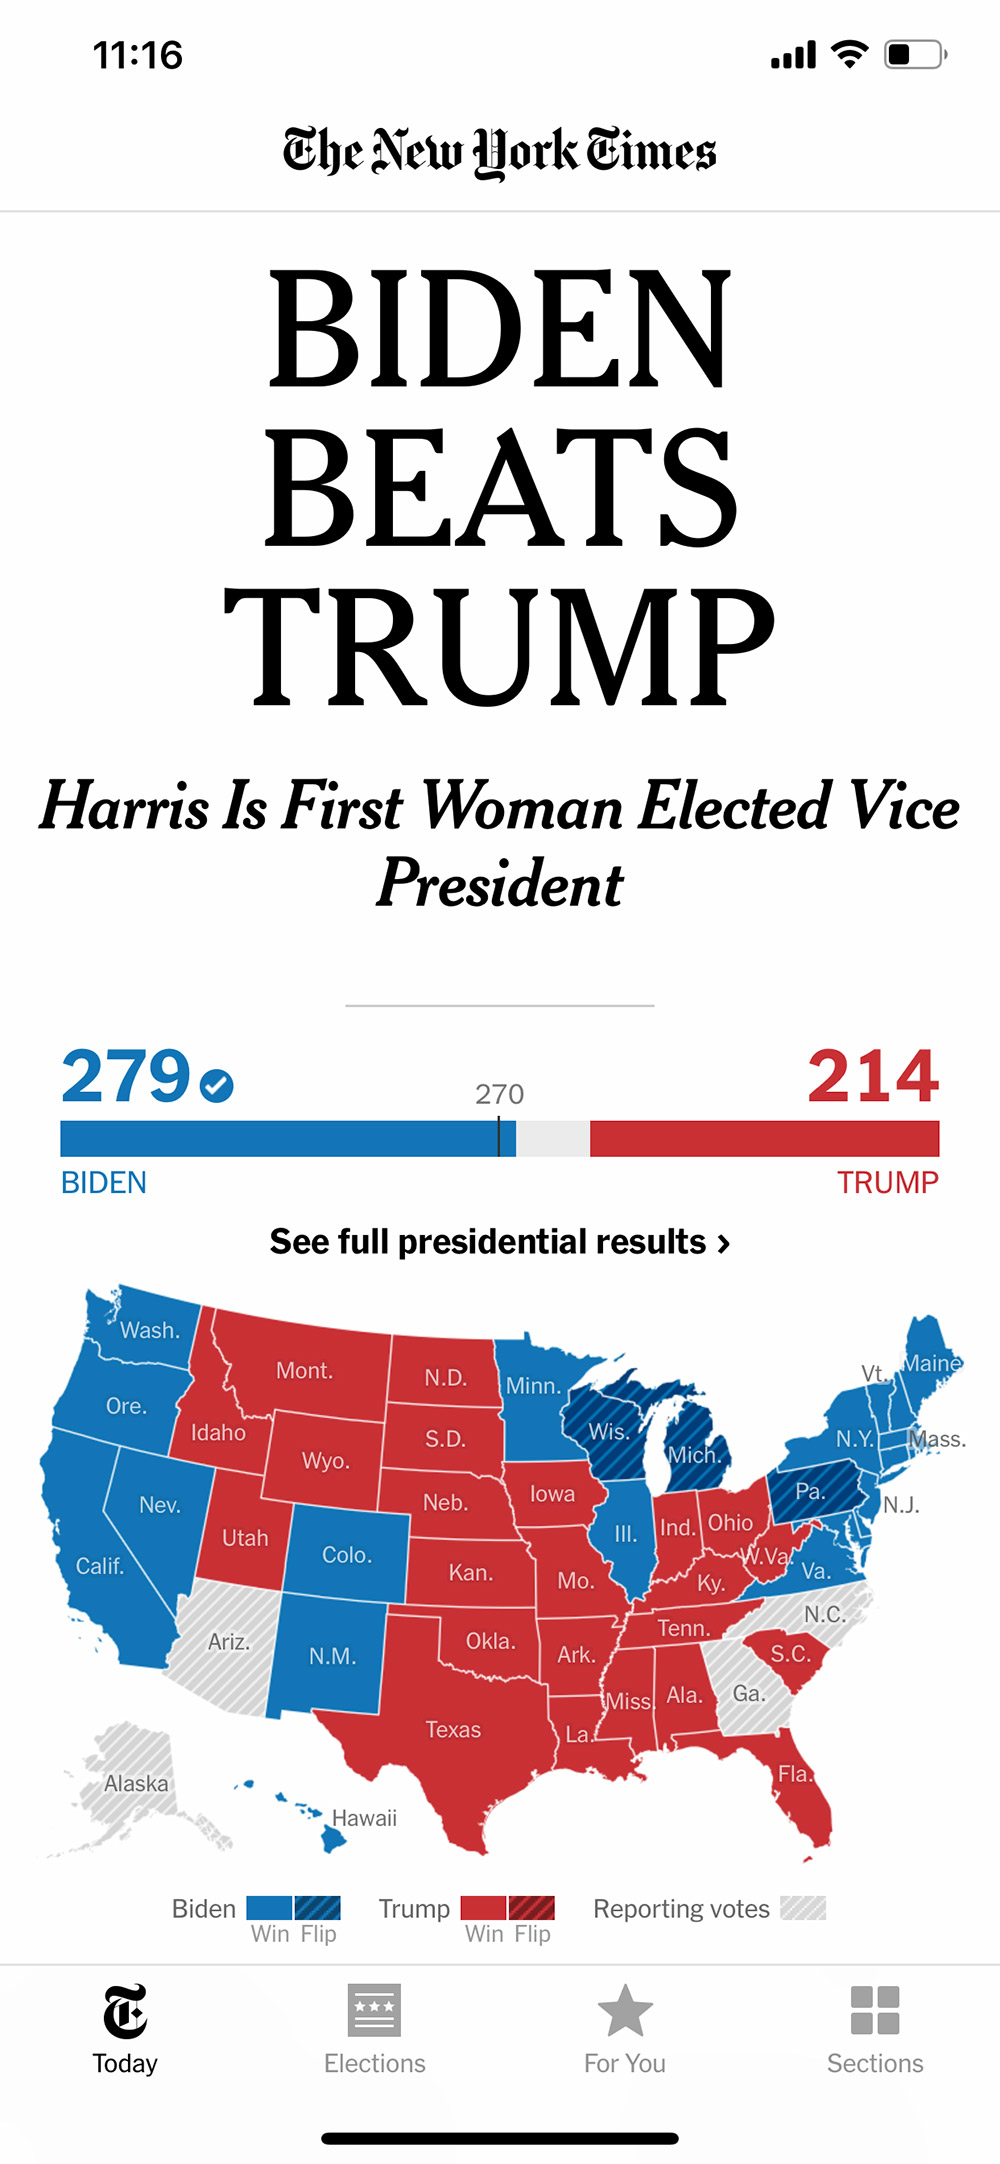 new york times headline - biden beats trump